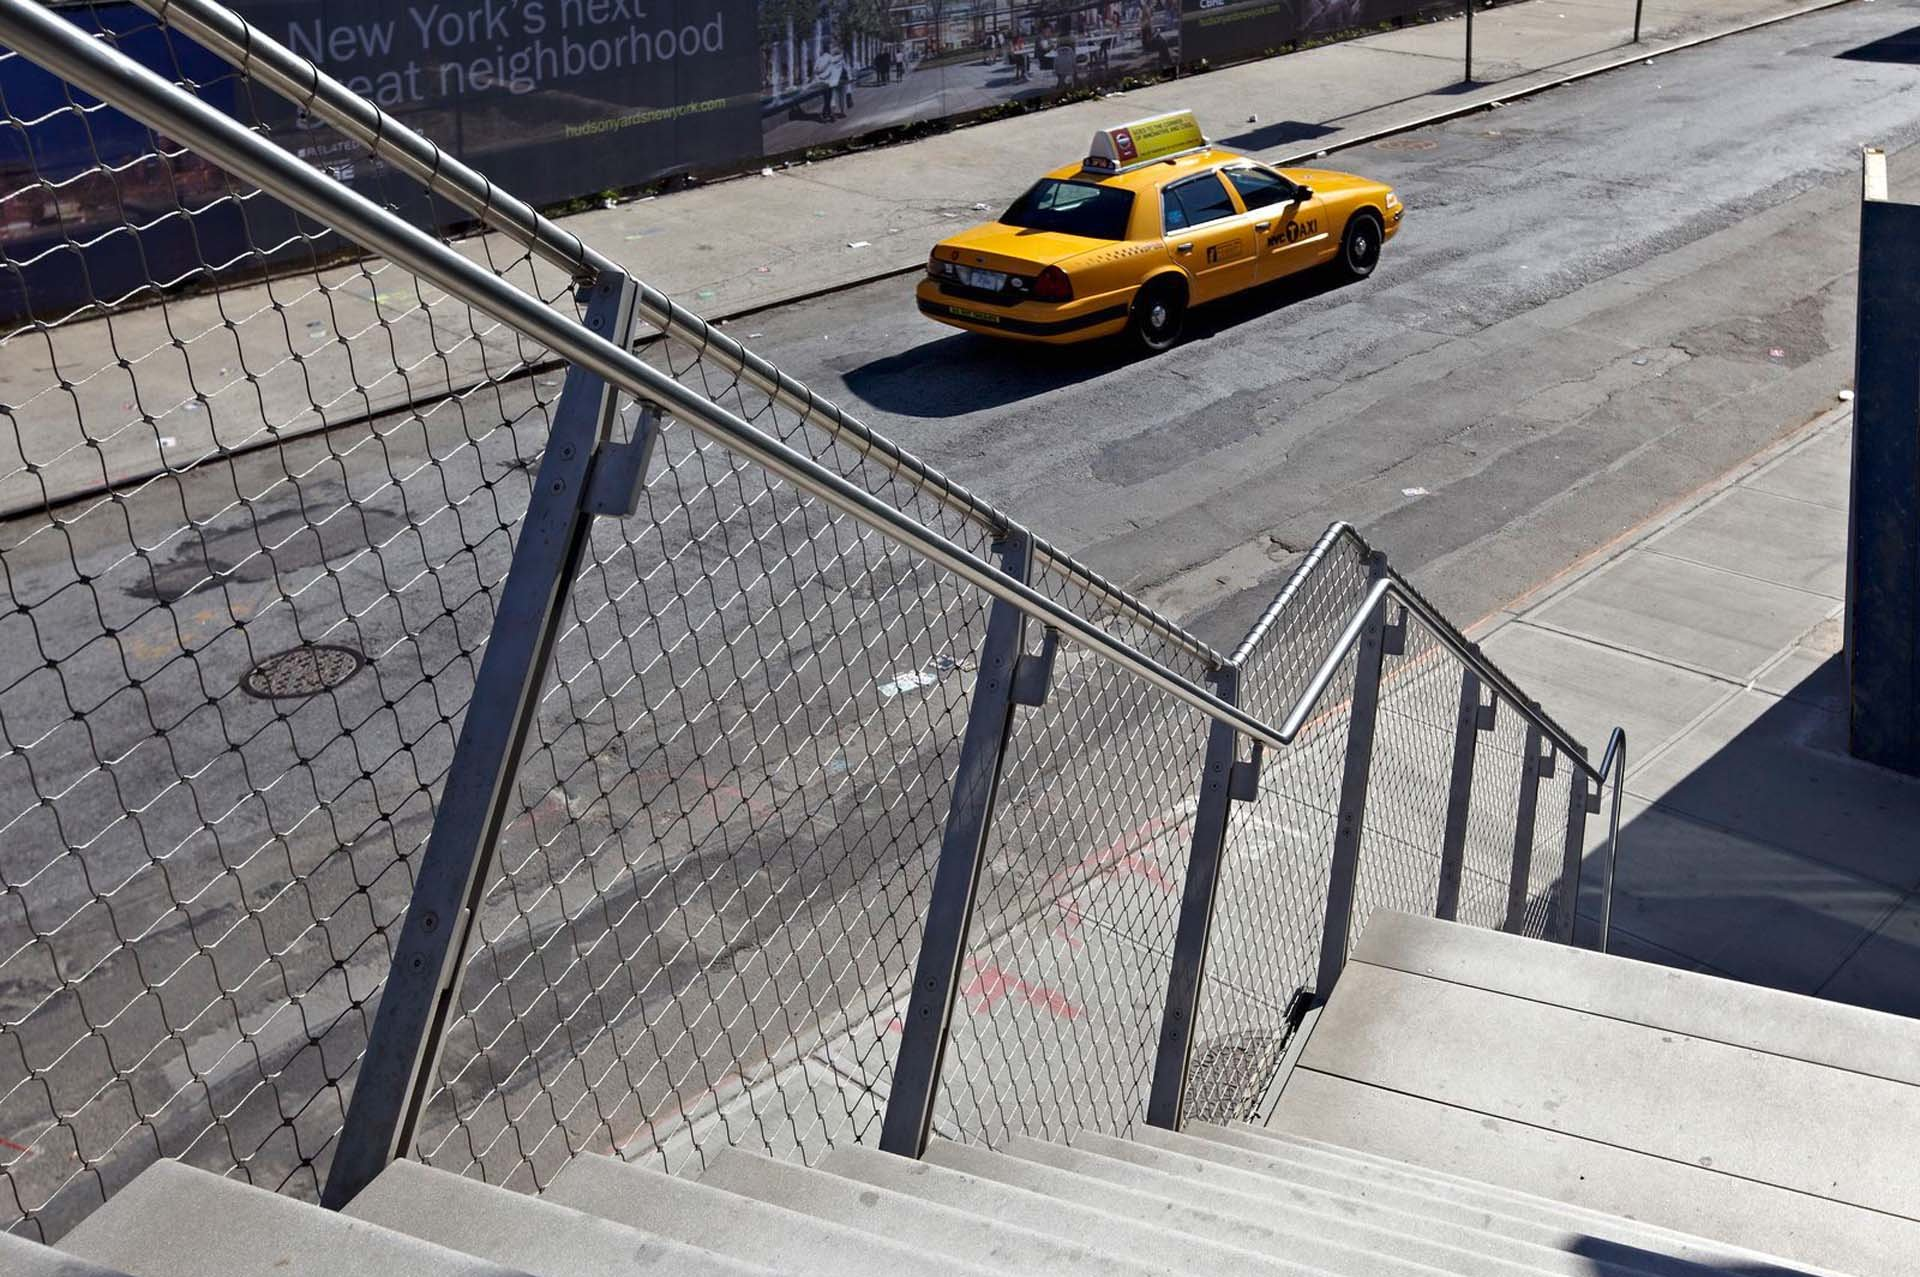 A yellow New York cab in front of a stair with a Webnet railing